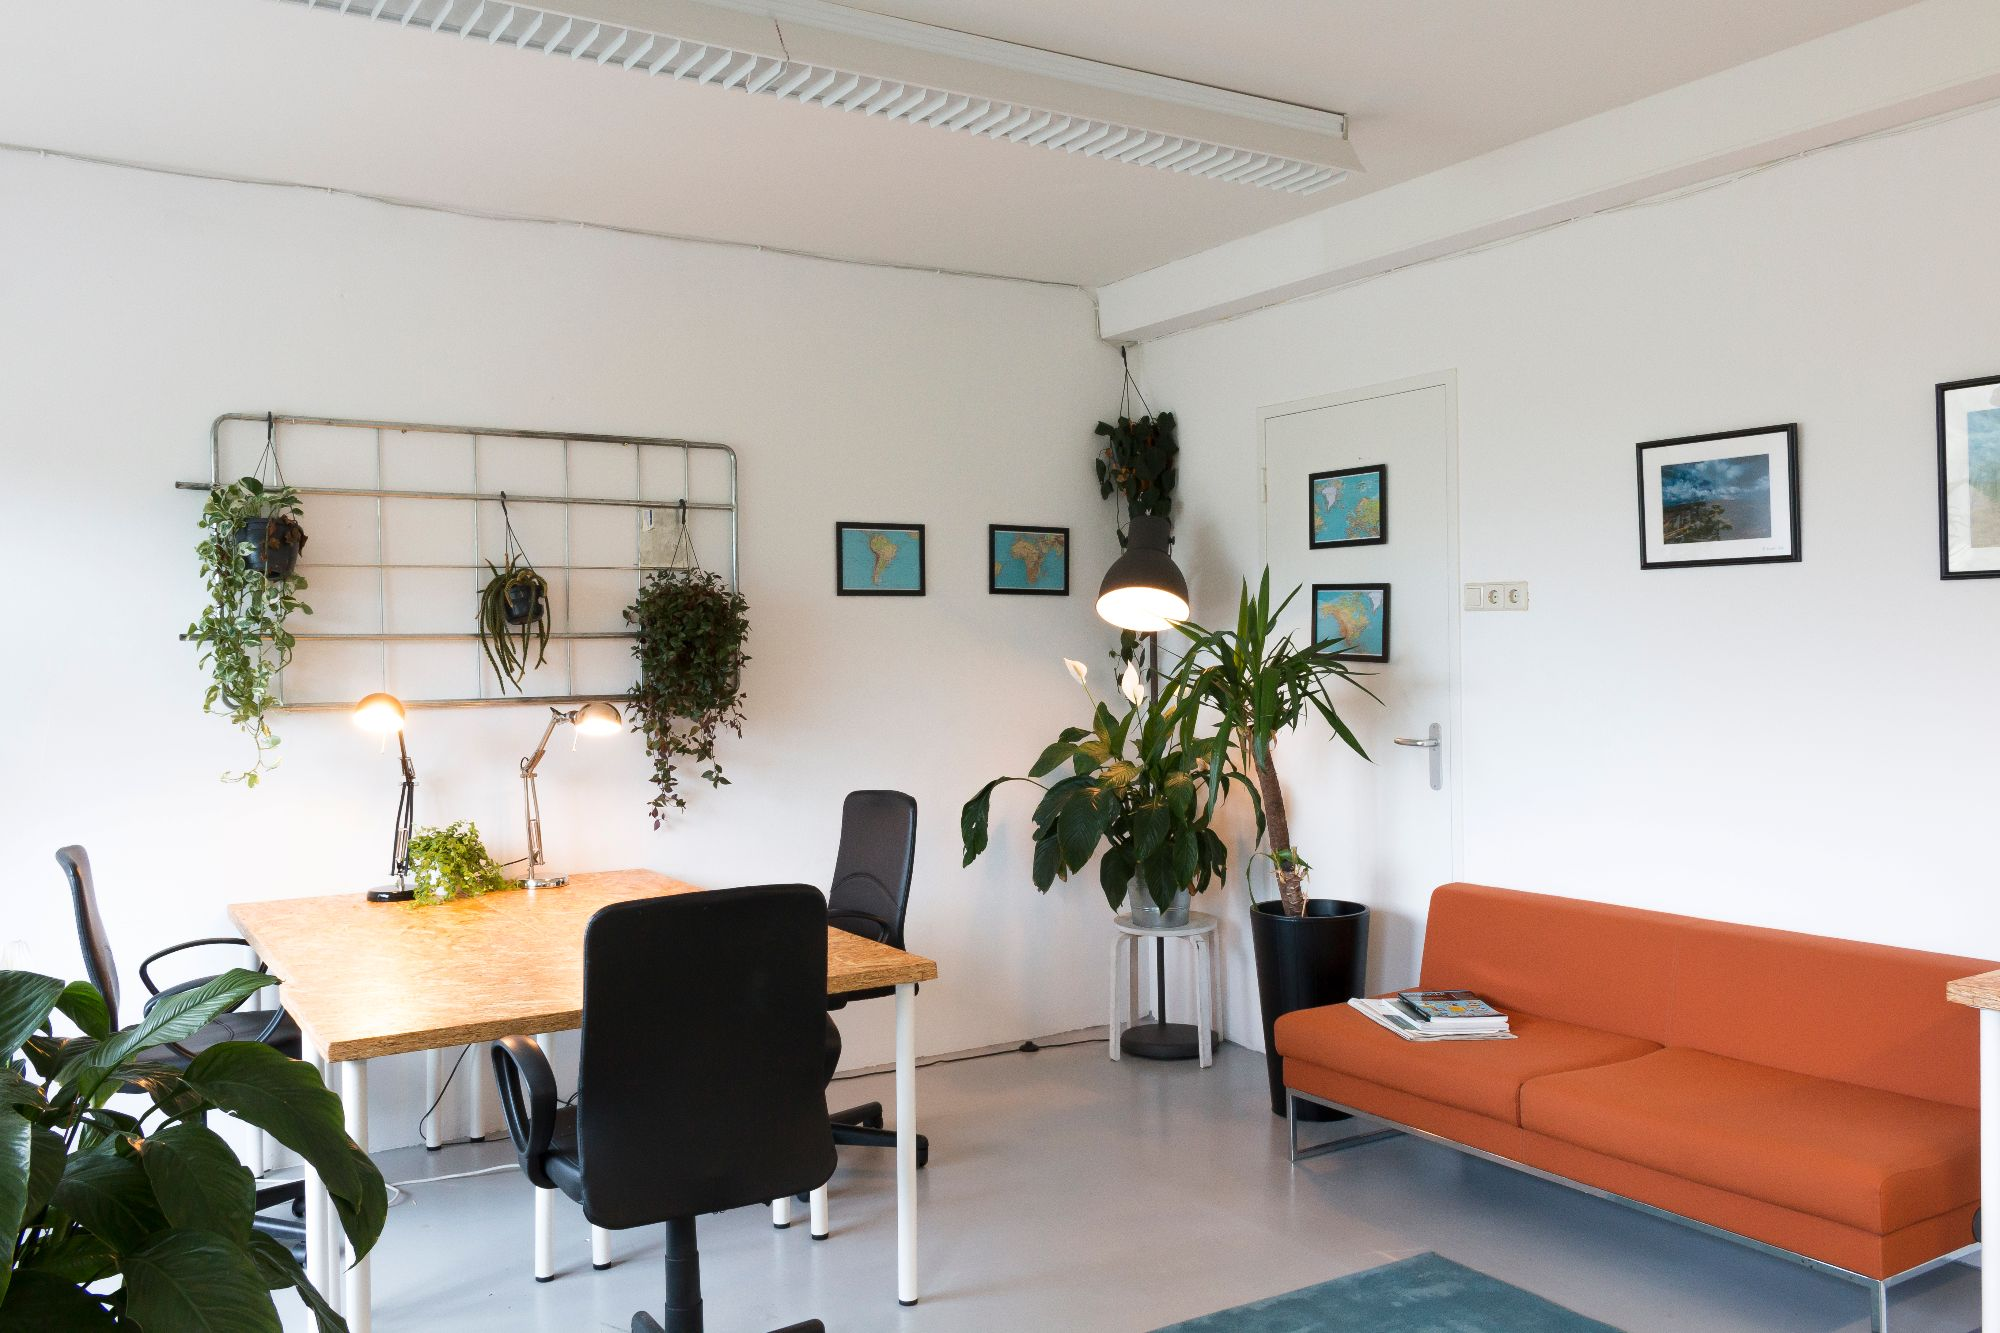 Rent office space Prinses Irenestraat 19, Amsterdam (18)